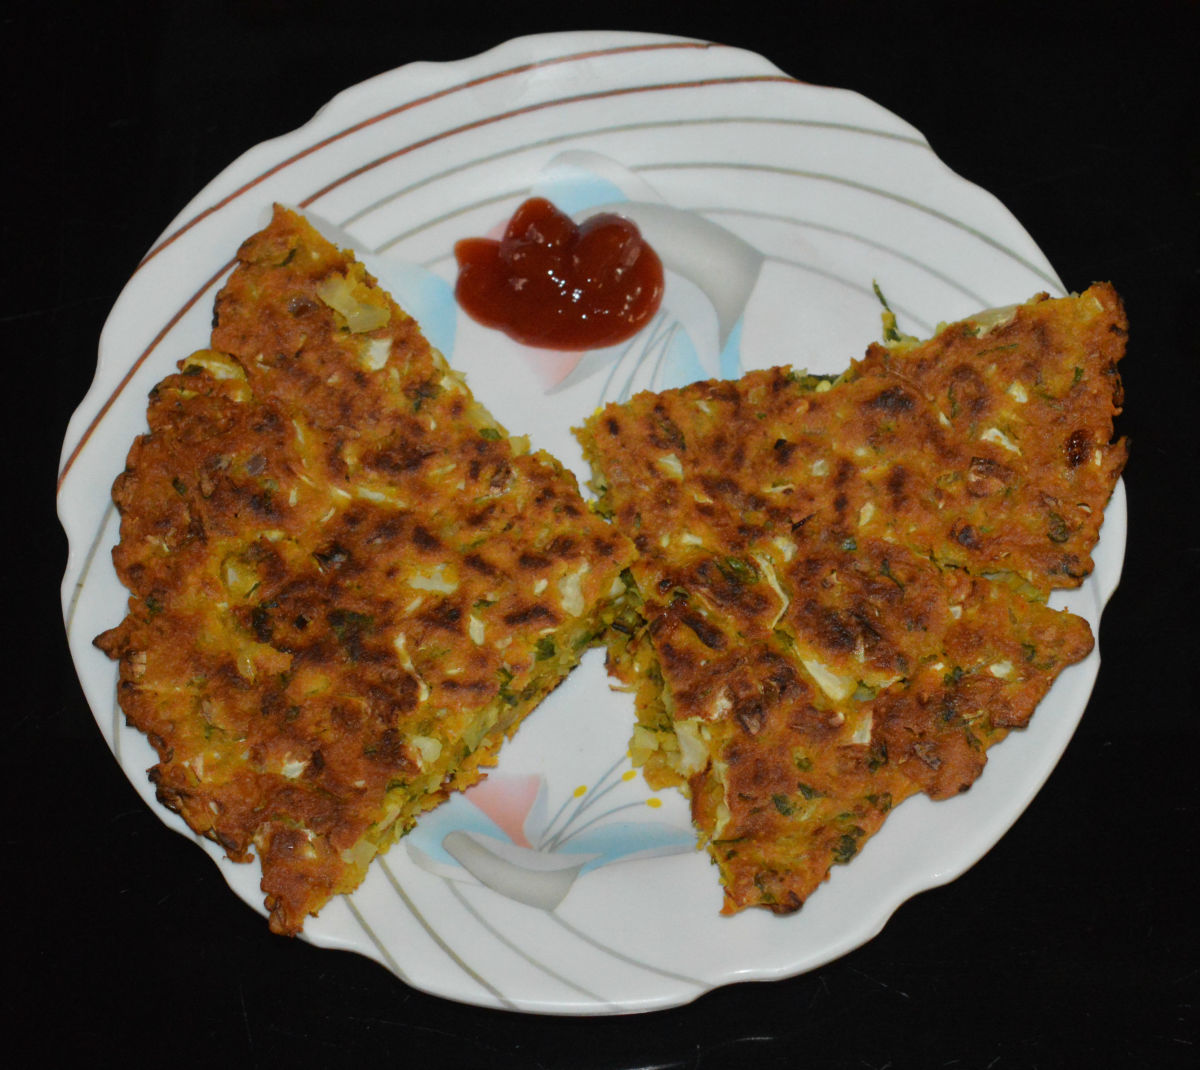 Now, you will get the cabbage pancake on the plate. Cut it in your desired shape. Serve hot with tomato sauce. Enjoy!